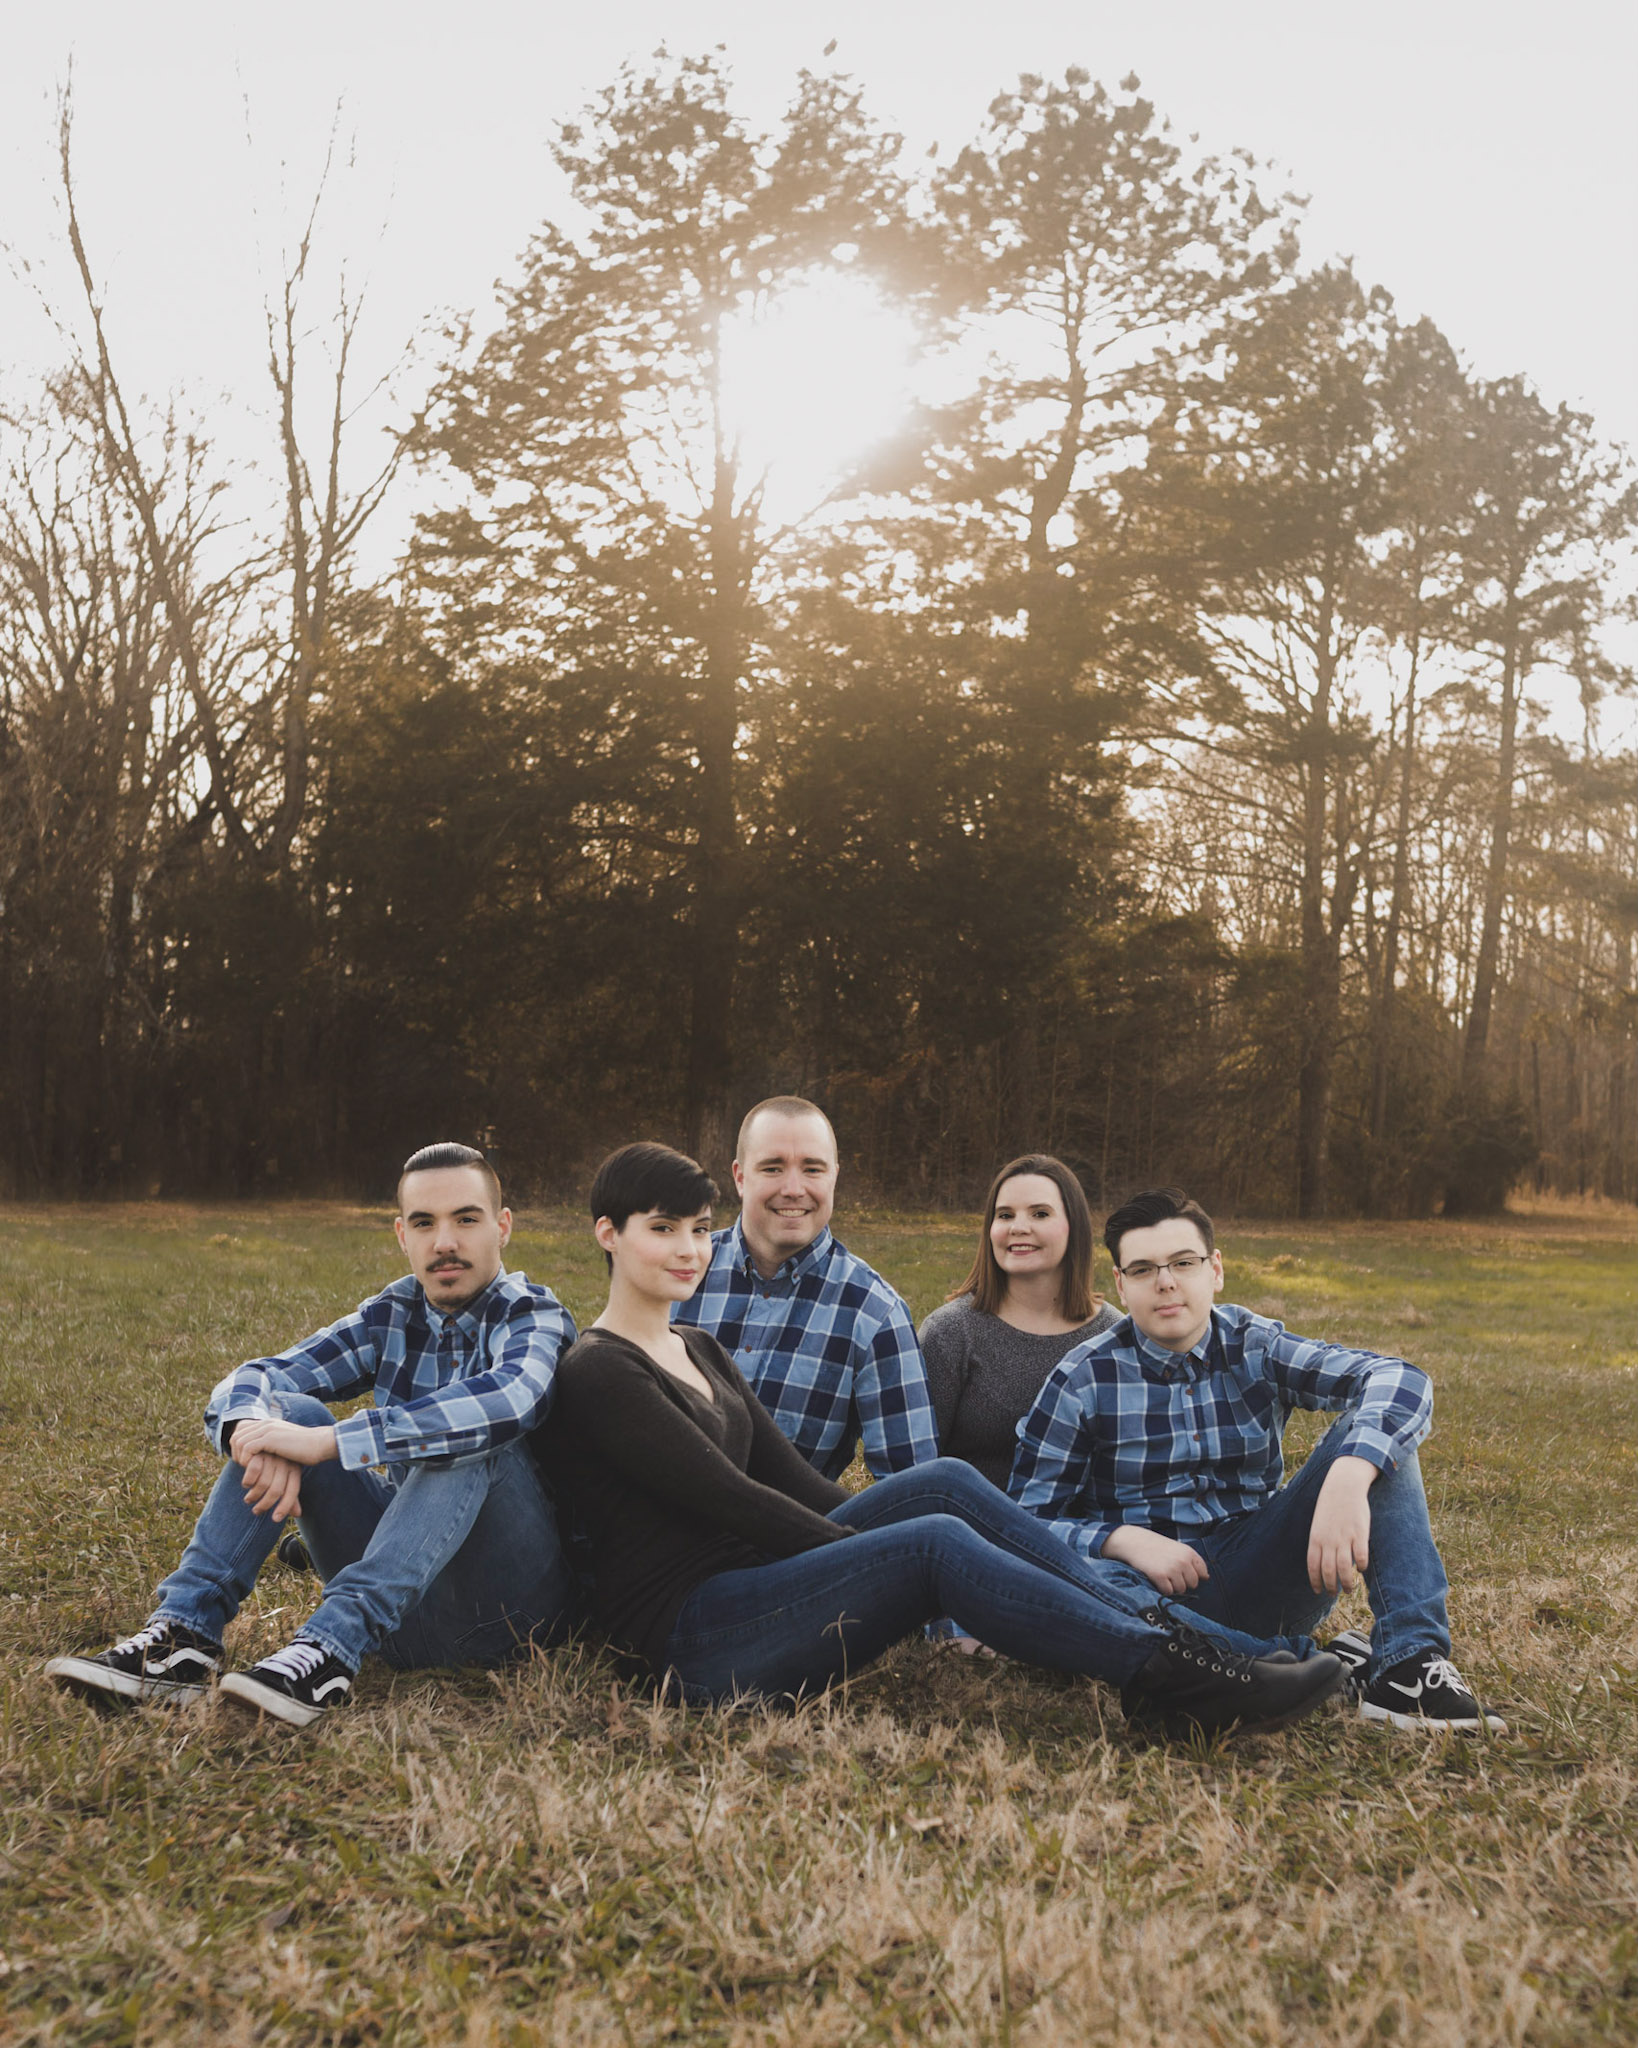 winter-family-7-fisher-farm-park-charlotte-nc-sublime collections photography.jpg